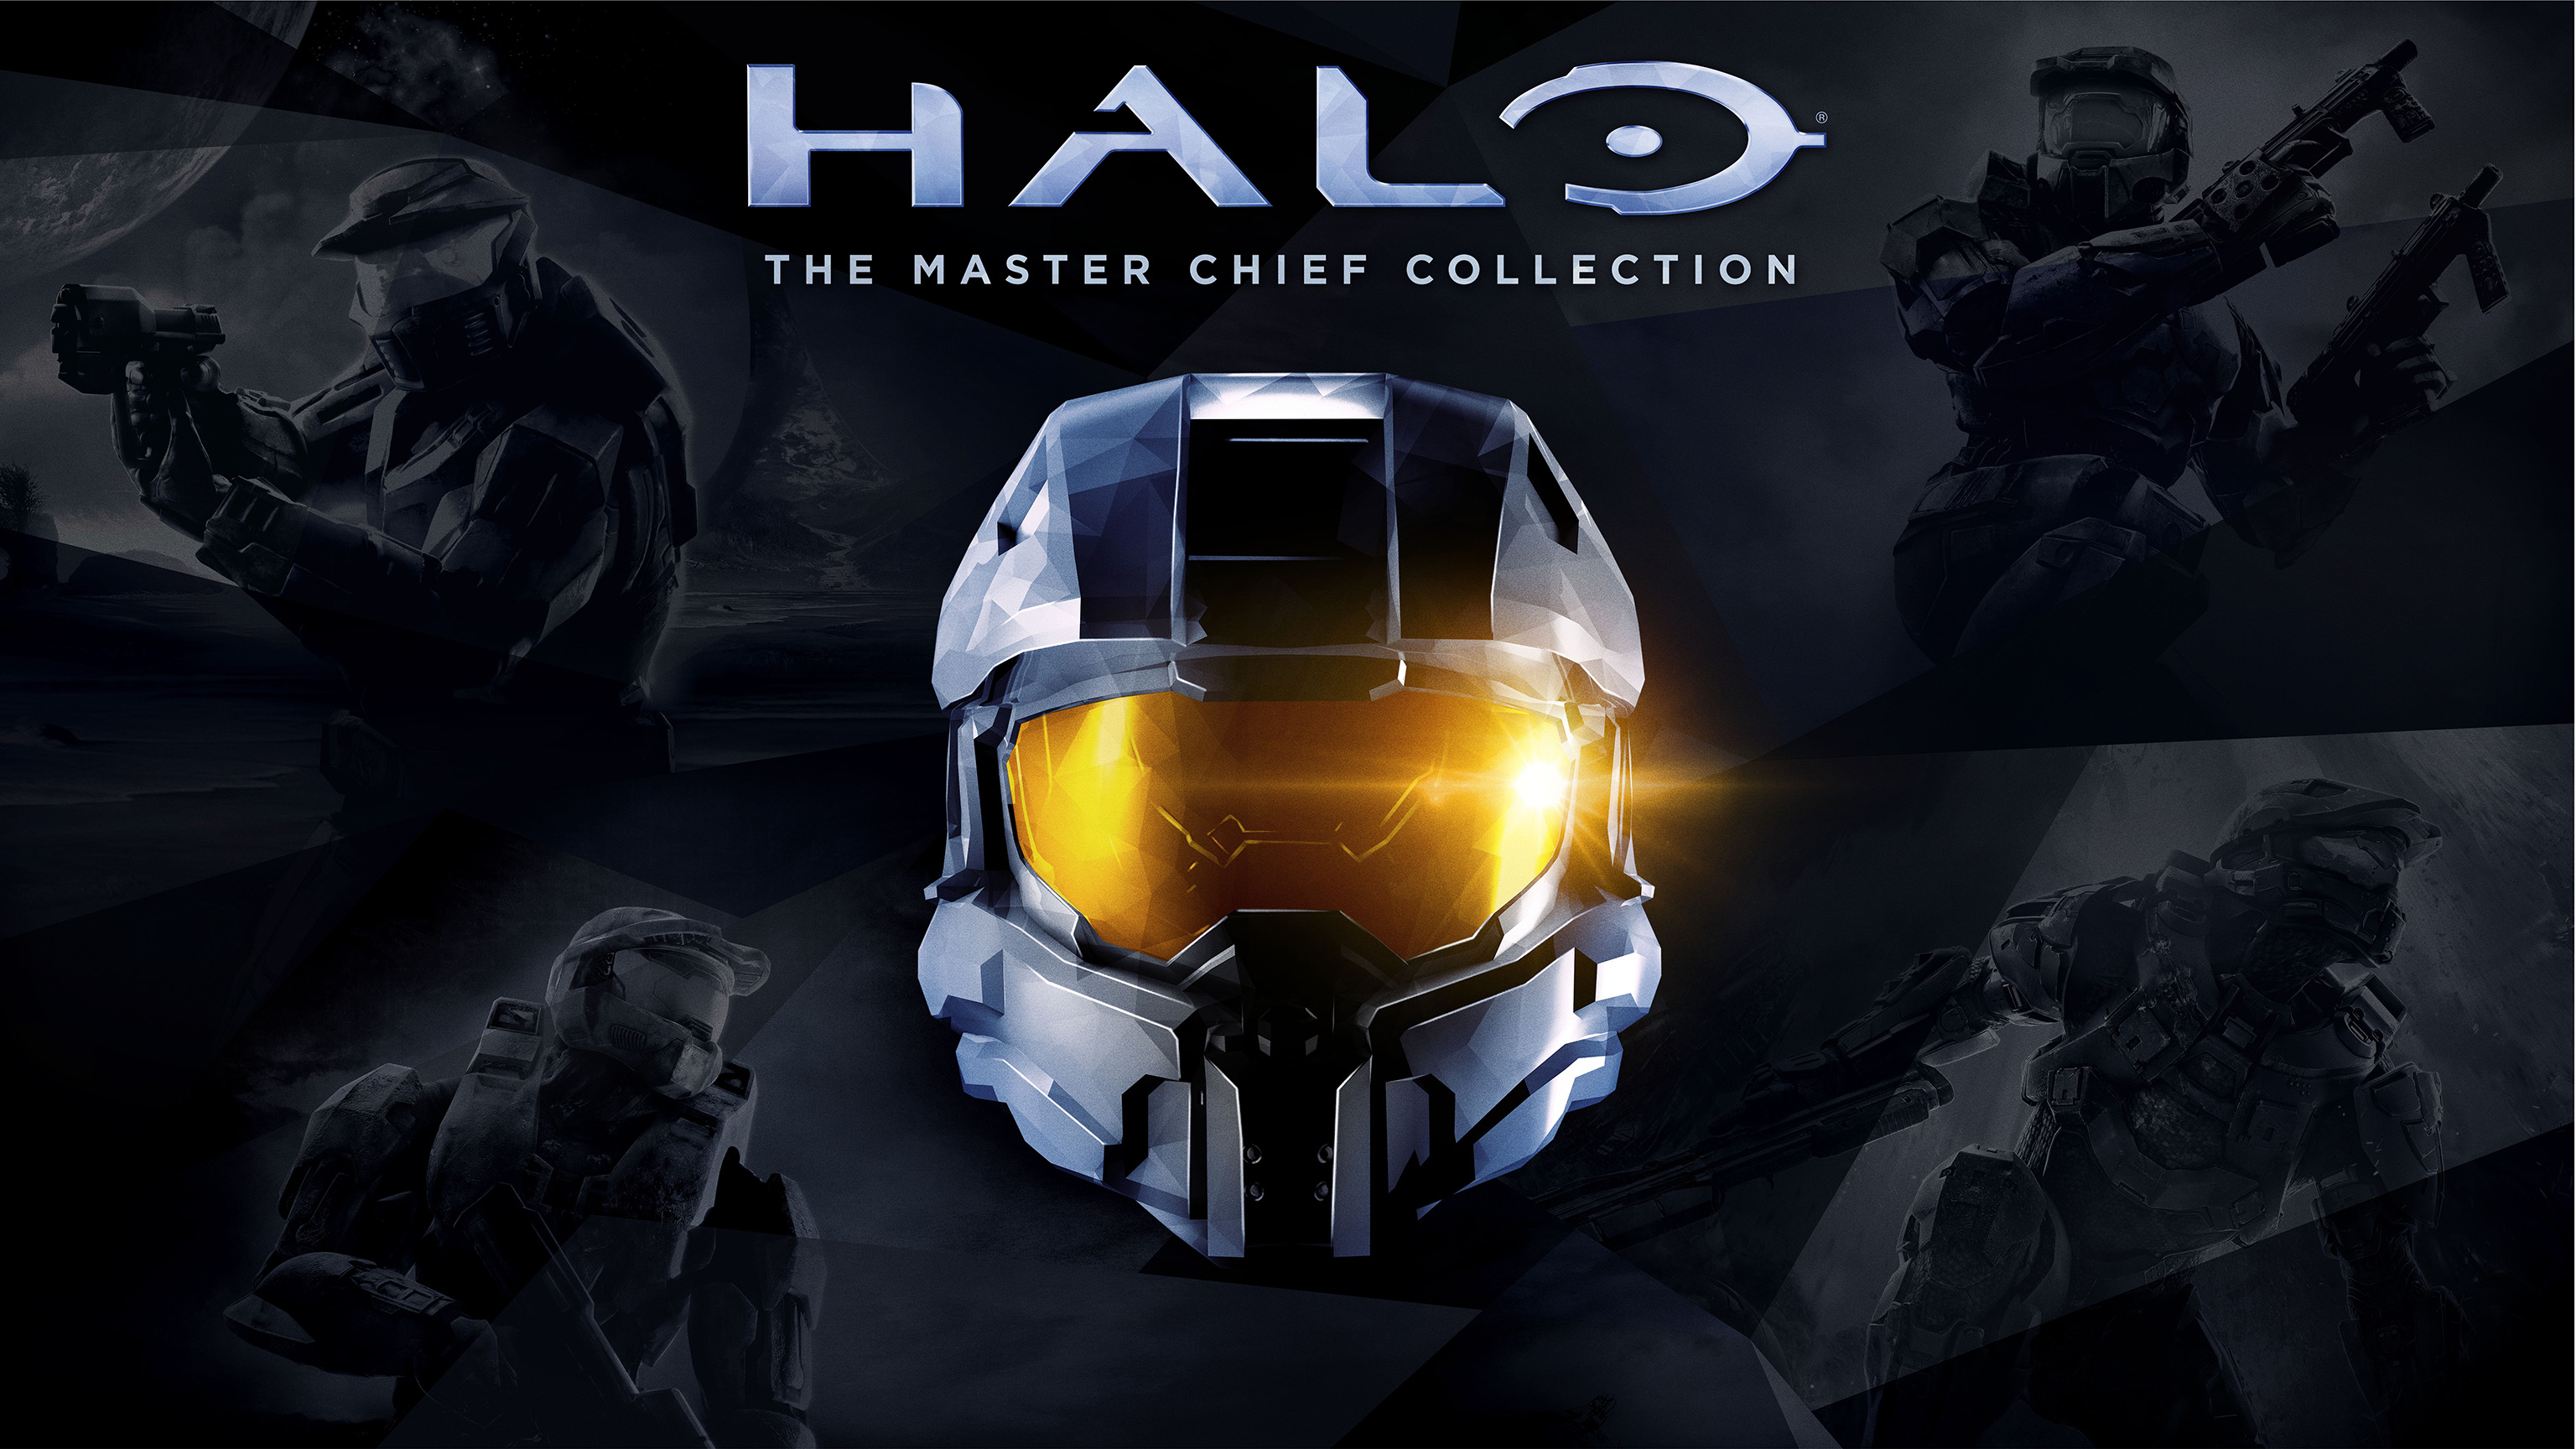 Halo: The Master Chief Collection | Podtacular